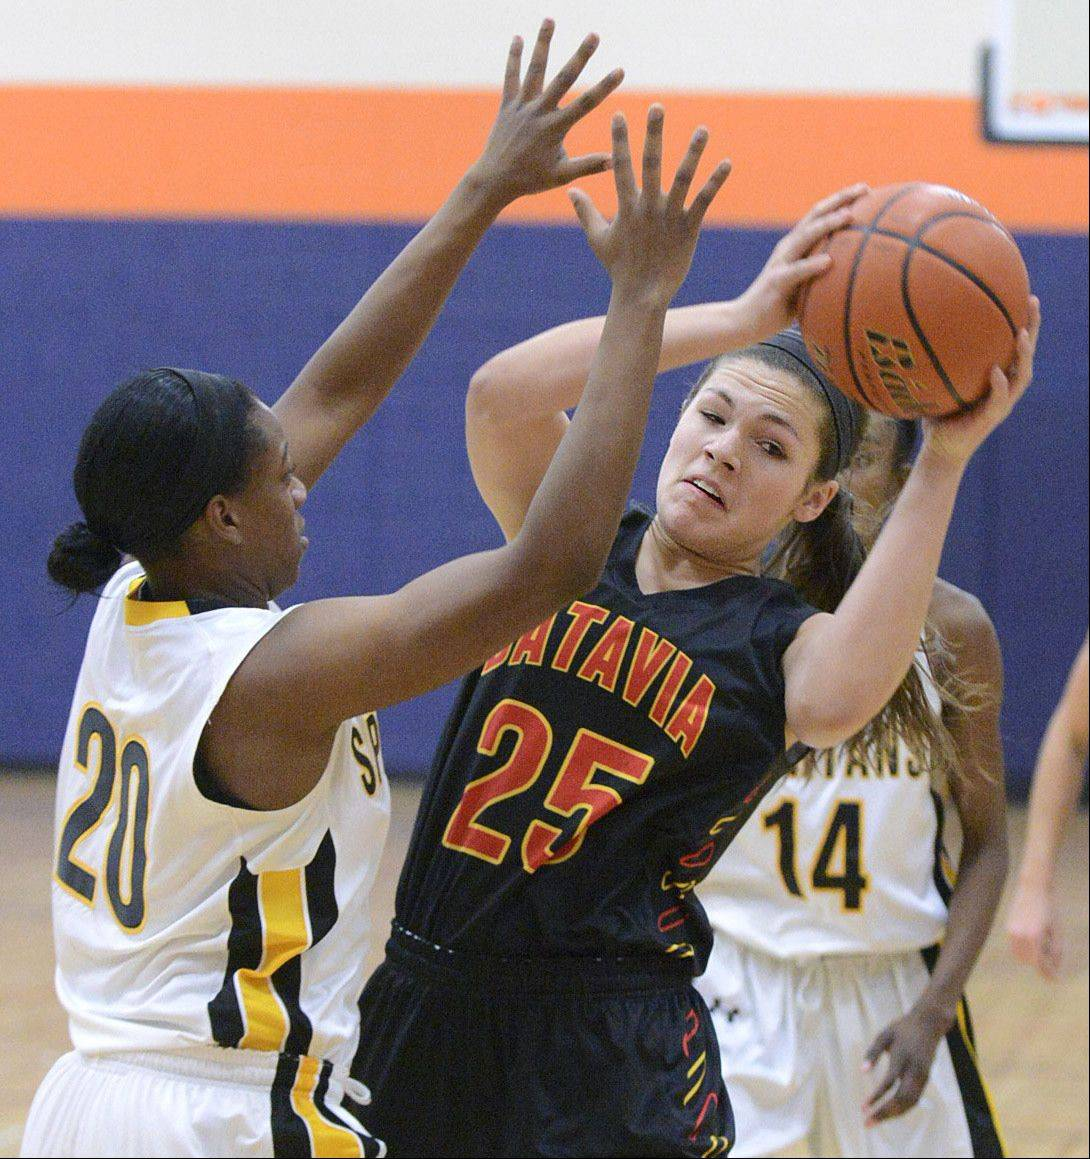 Batavia's Hannah Frazier attempts a pass around Marian Catholic's Dajhae Mullins during Wednesday's game.